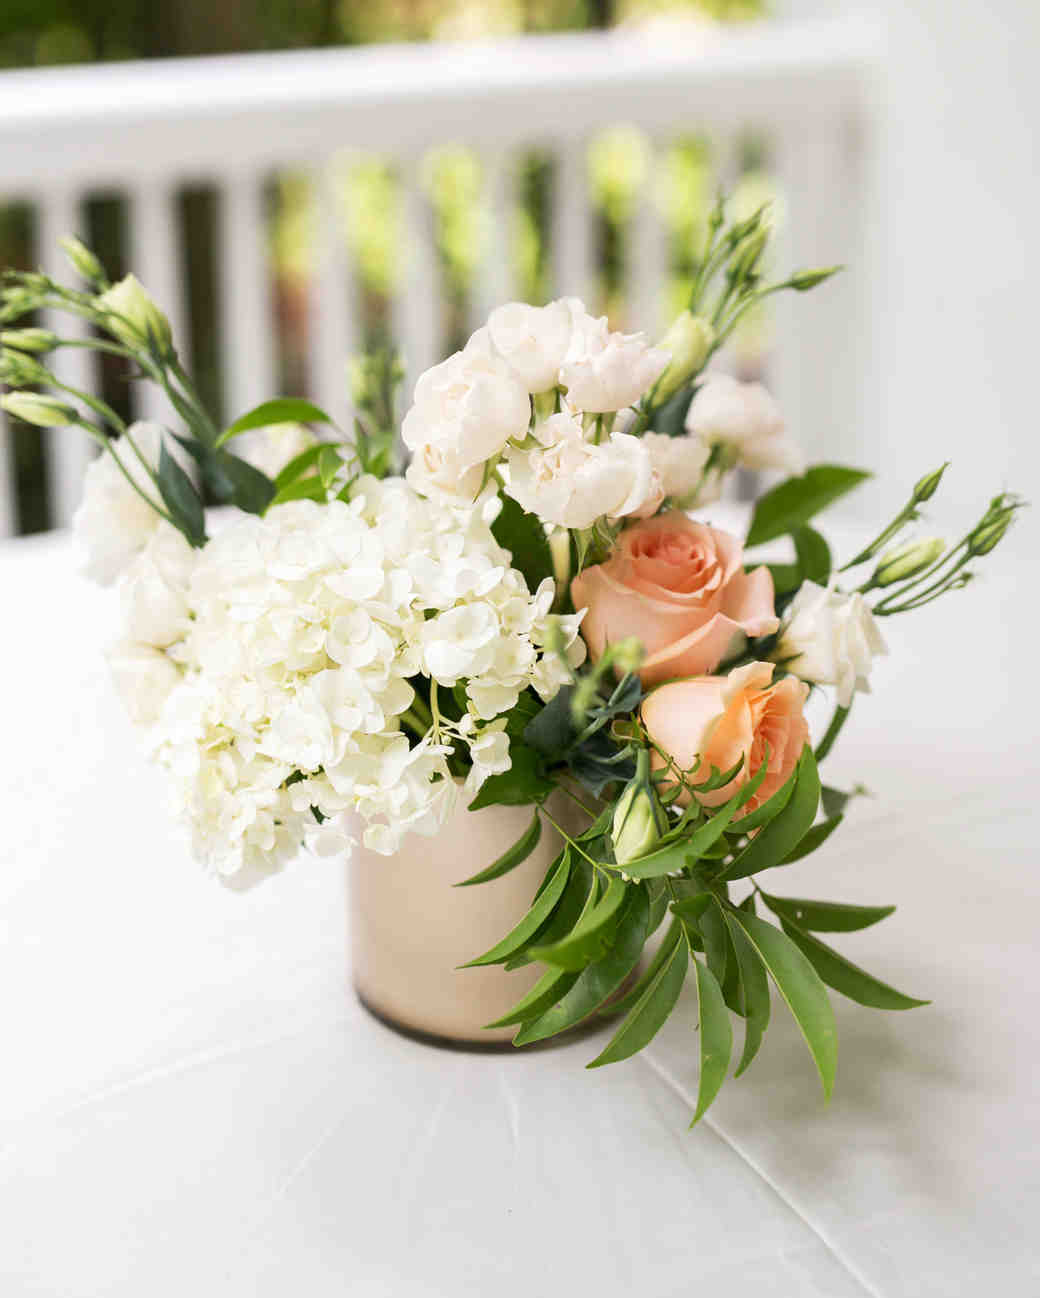 Very Low Budget Wedding: Affordable Wedding Centerpieces That Still Look Elevated